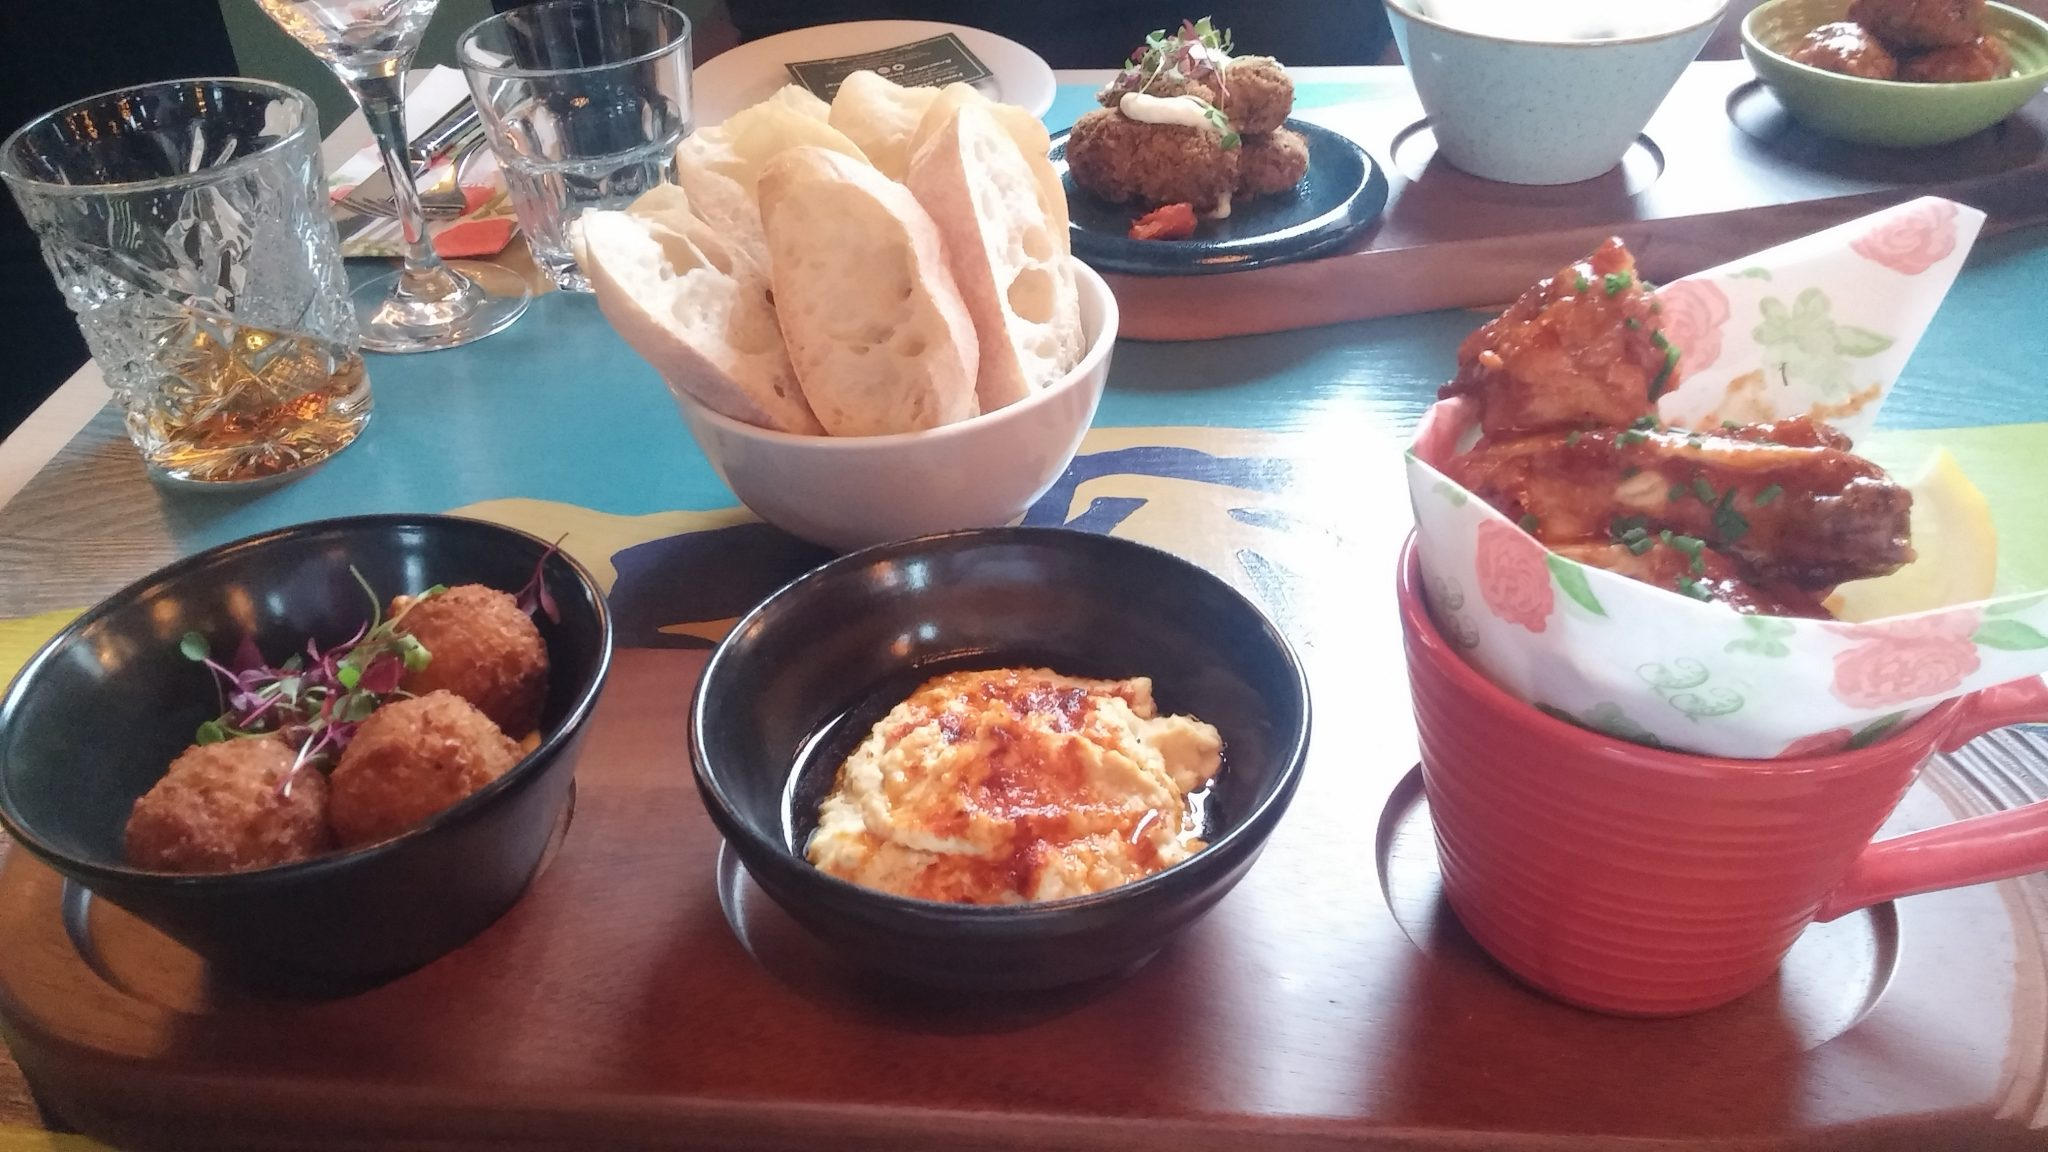 (left to right: falafels, hummus, chicken wings)